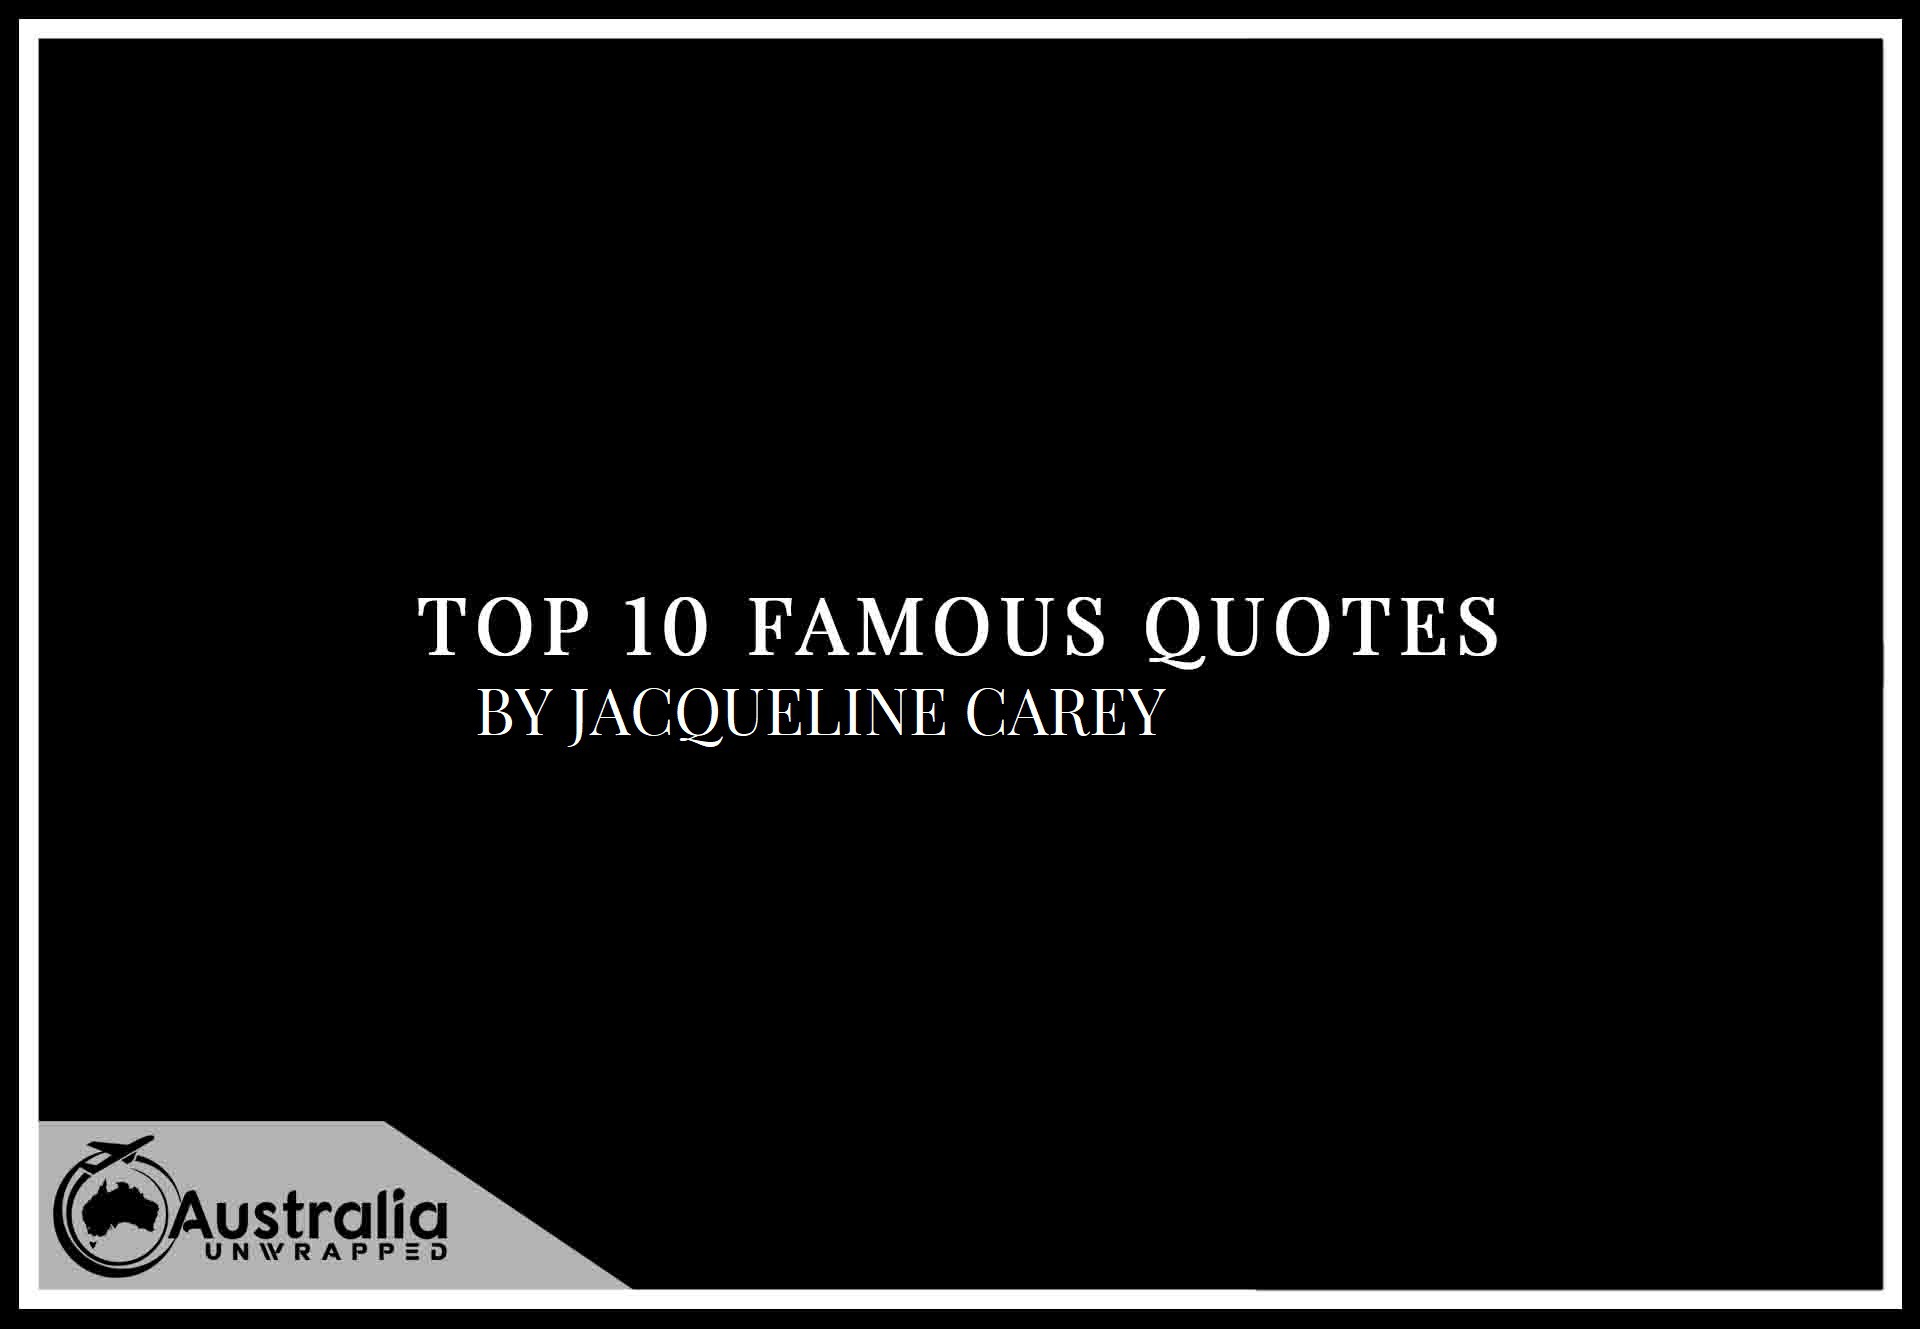 Top 10 Famous Quotes by Author Jacqueline Carey